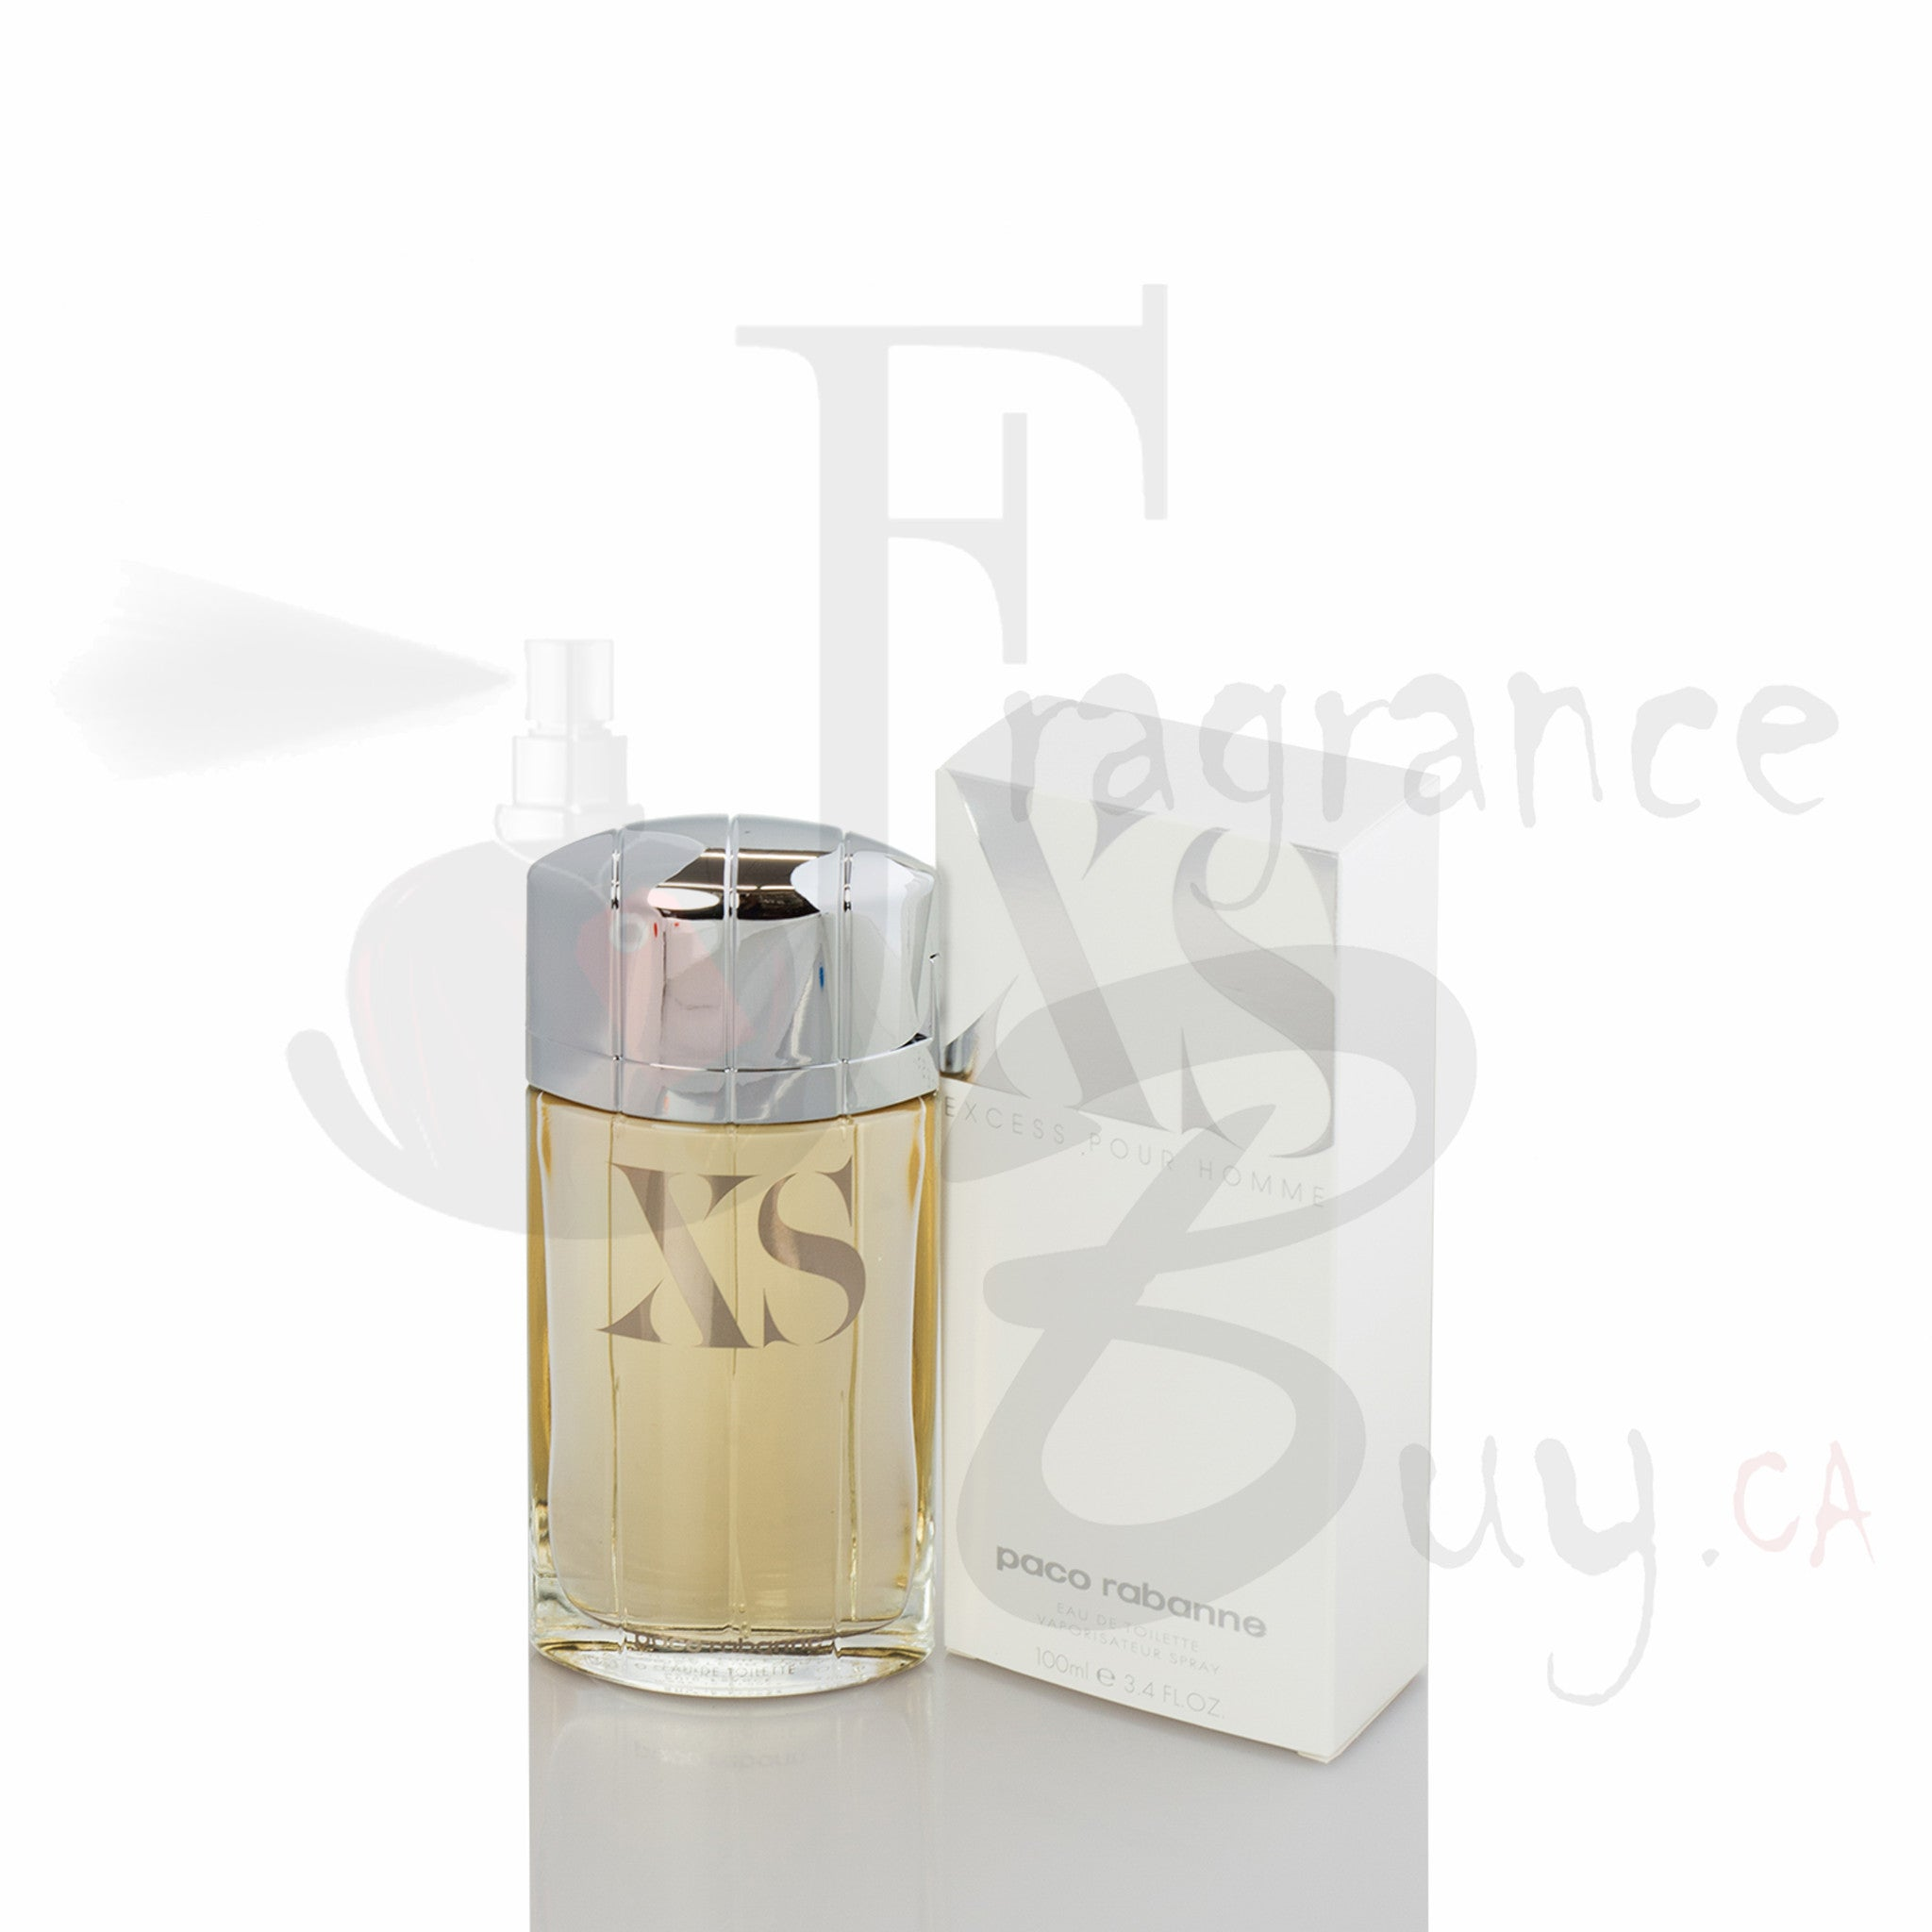 Paco Rabanne XS (White) For Man